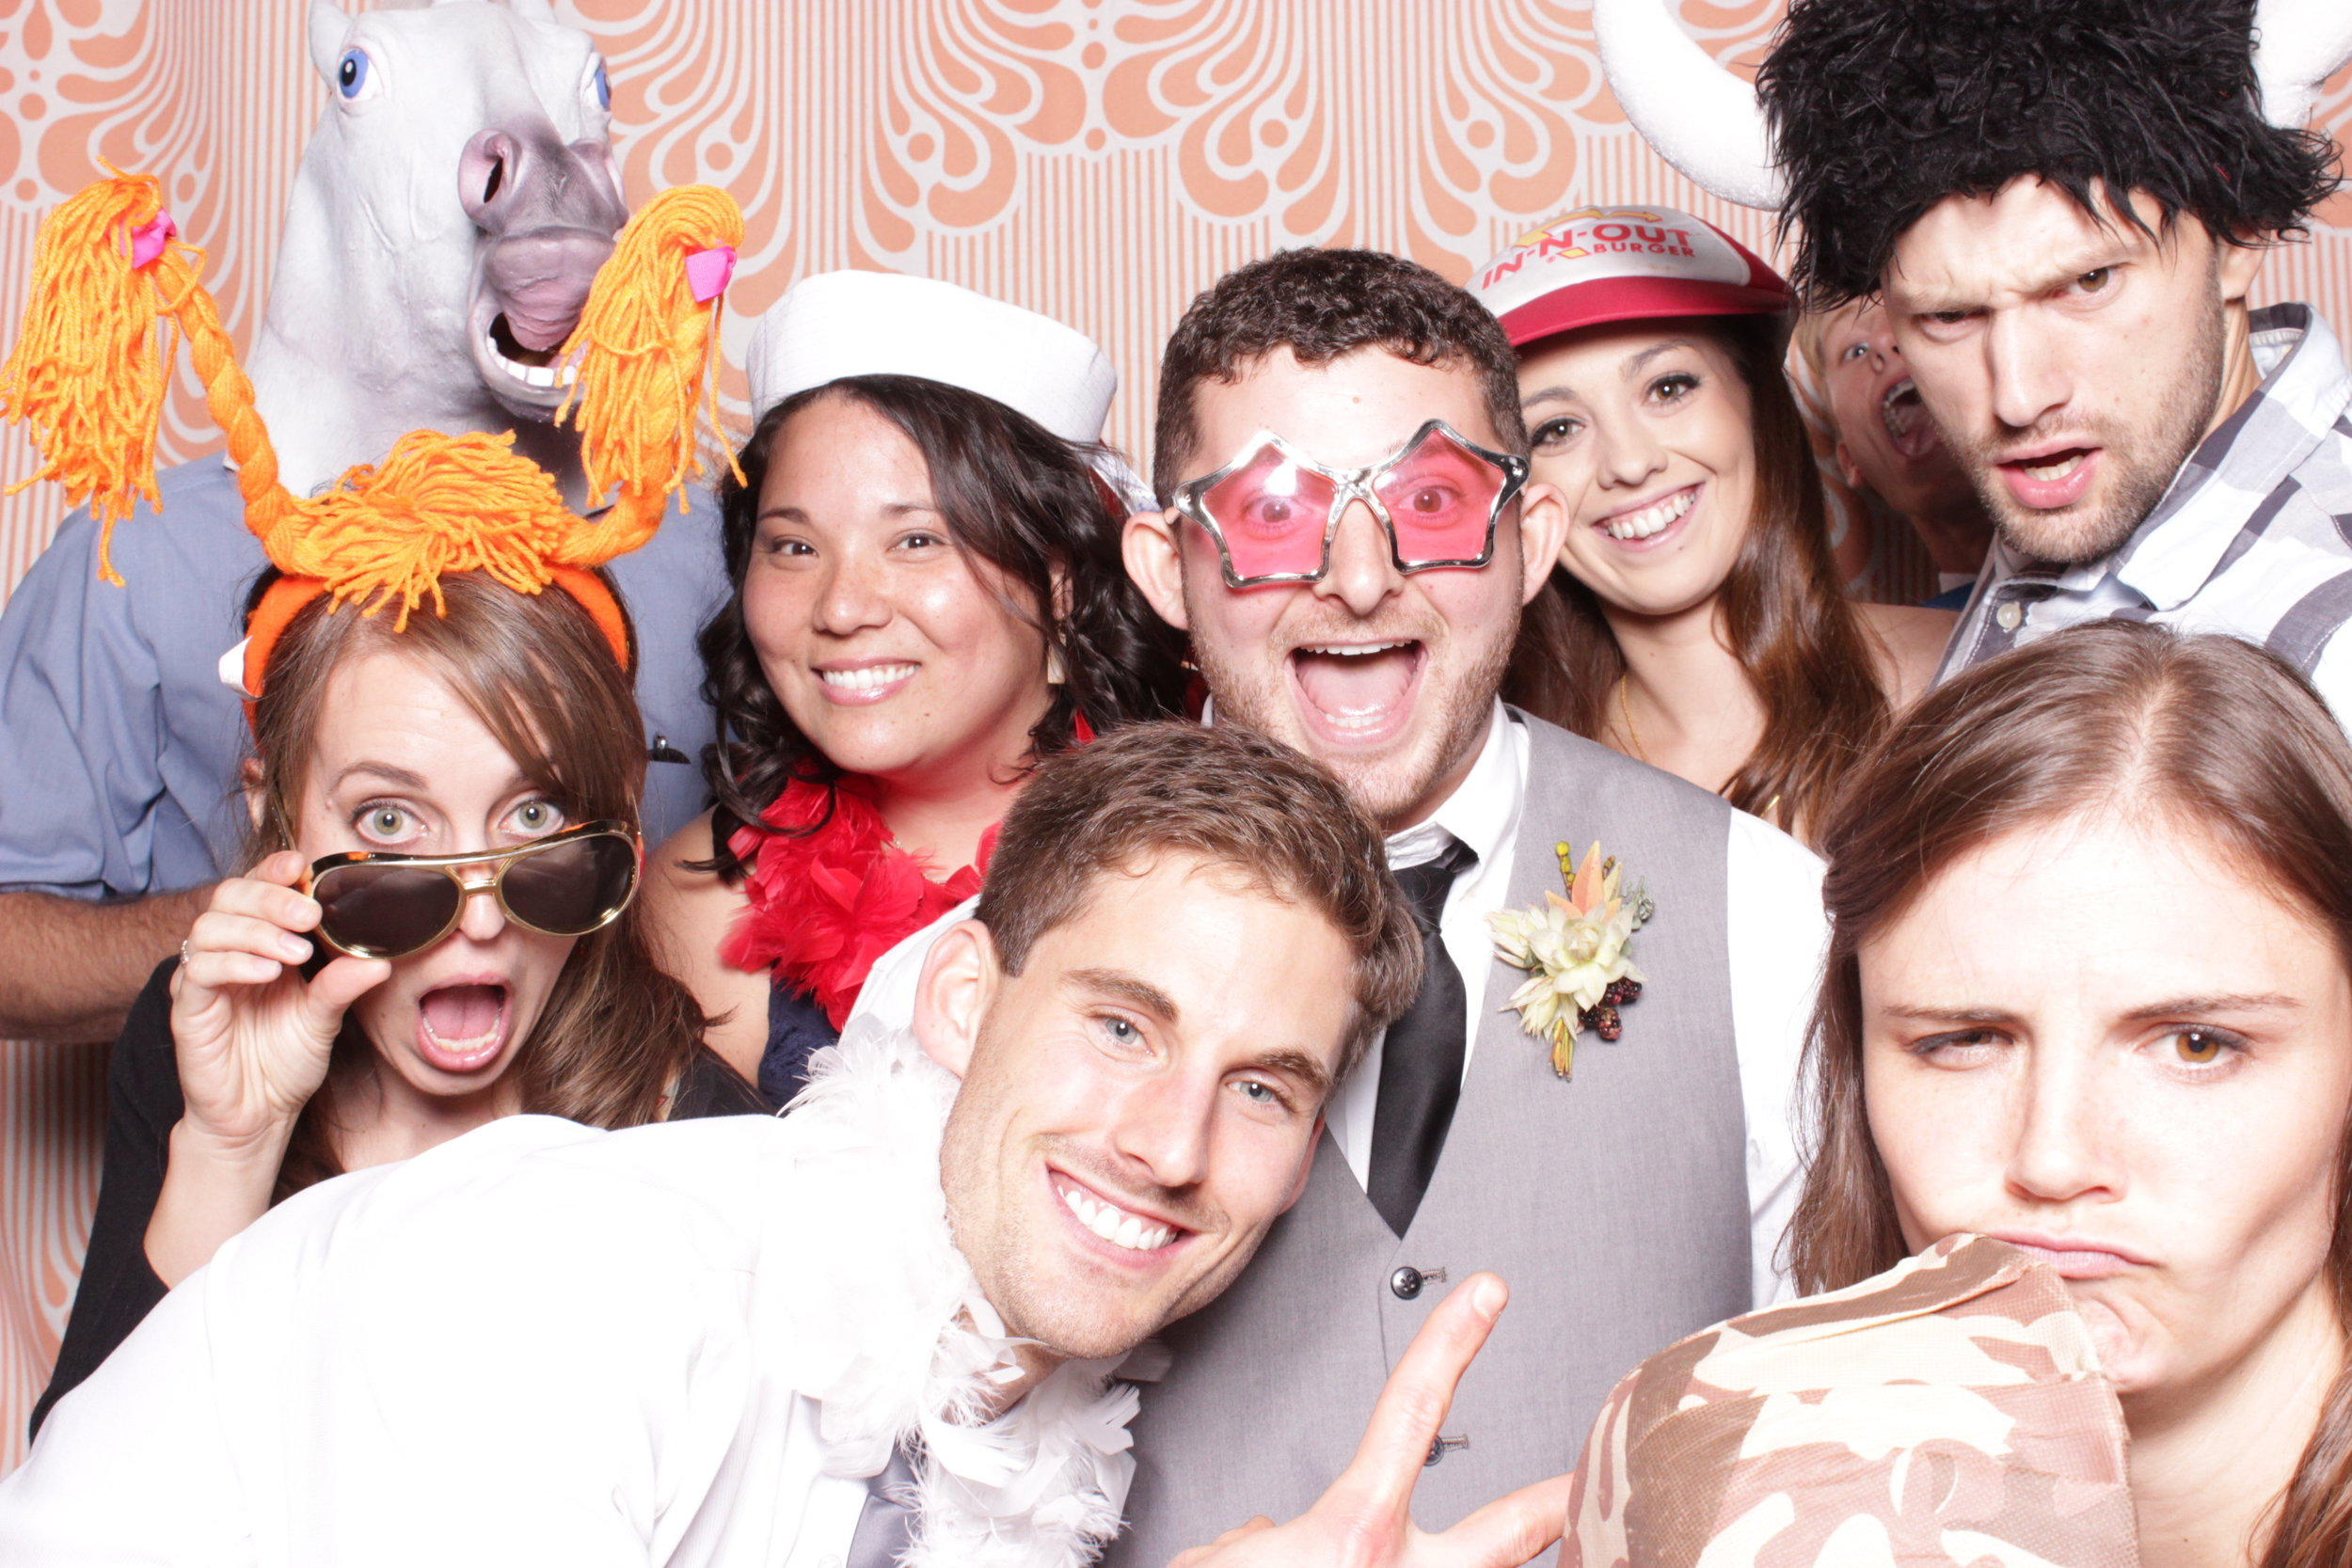 photo-booth-chico-state-party